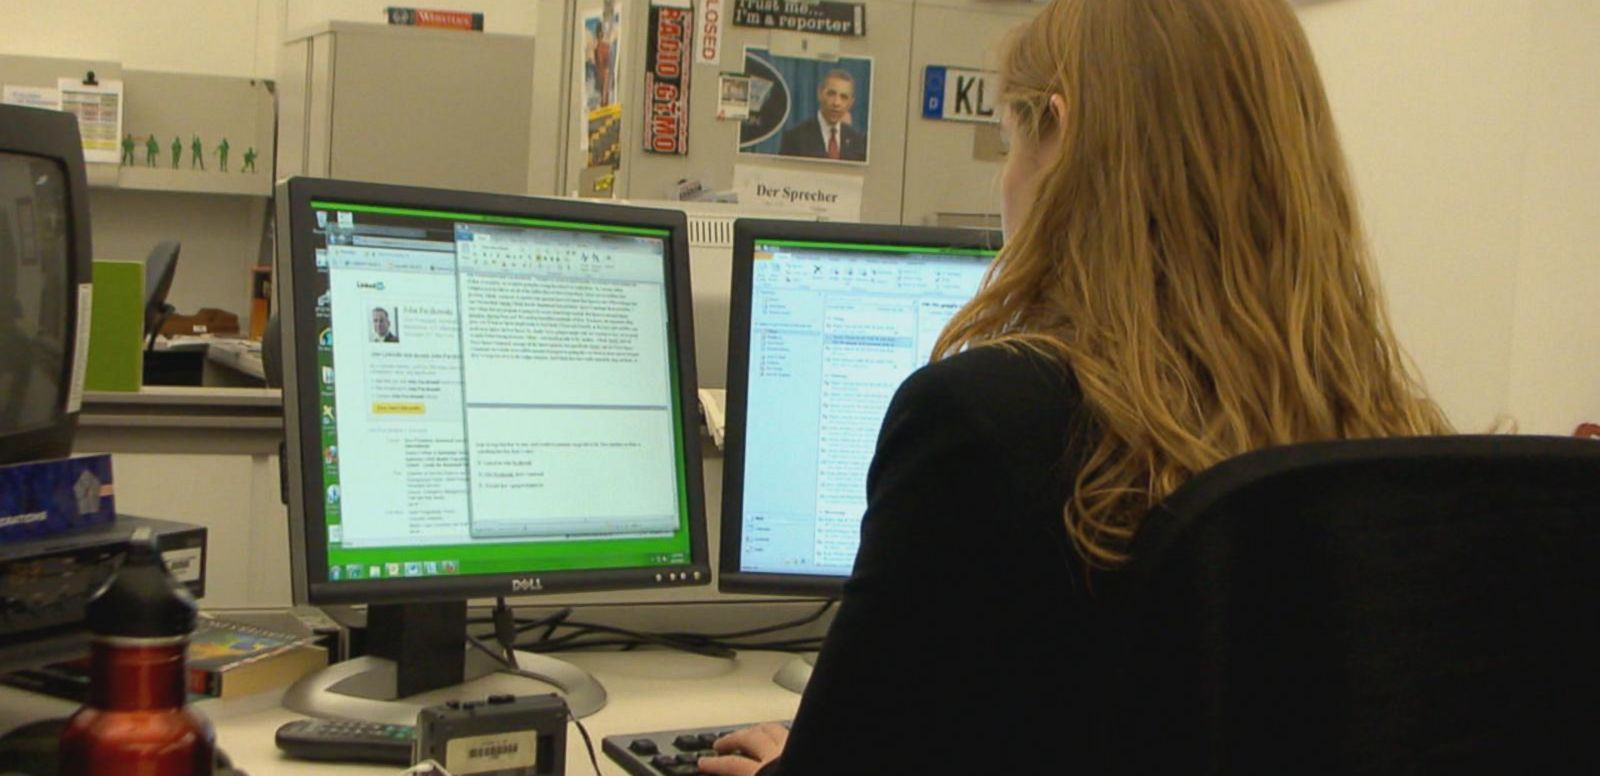 VIDEO: The unemployment rate drops to 5.5%, its lowest level since May 2008.